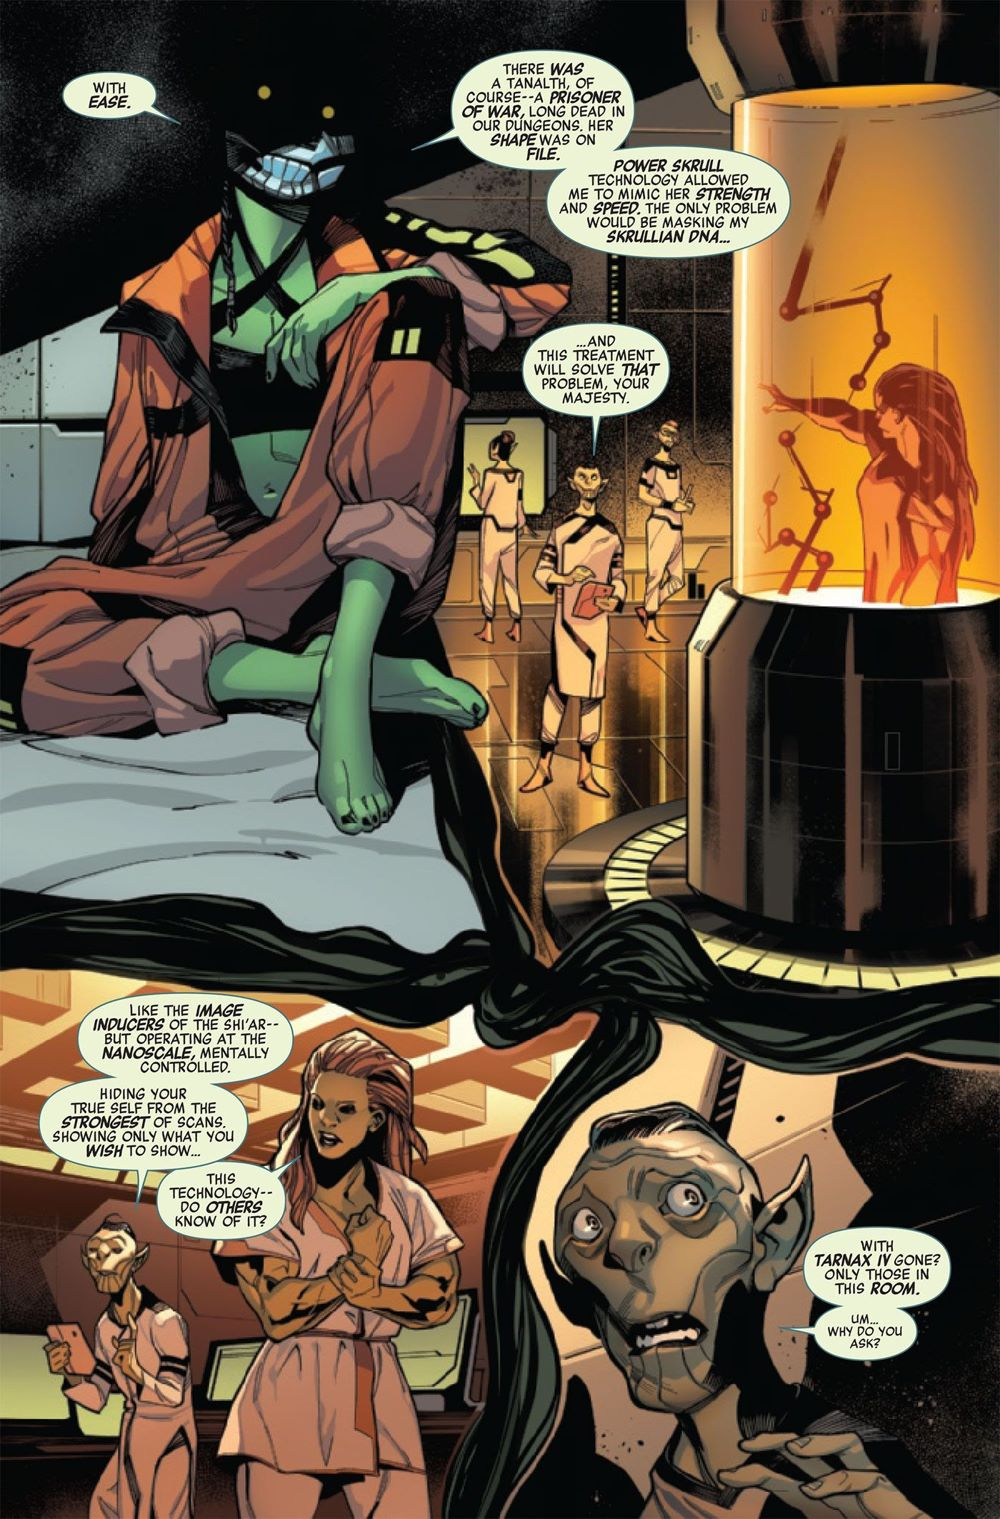 EMPYREAFTERAVEN2020001-Preview-4-1 ComicList Previews: EMPYRE AFTERMATH AVENGERS #1